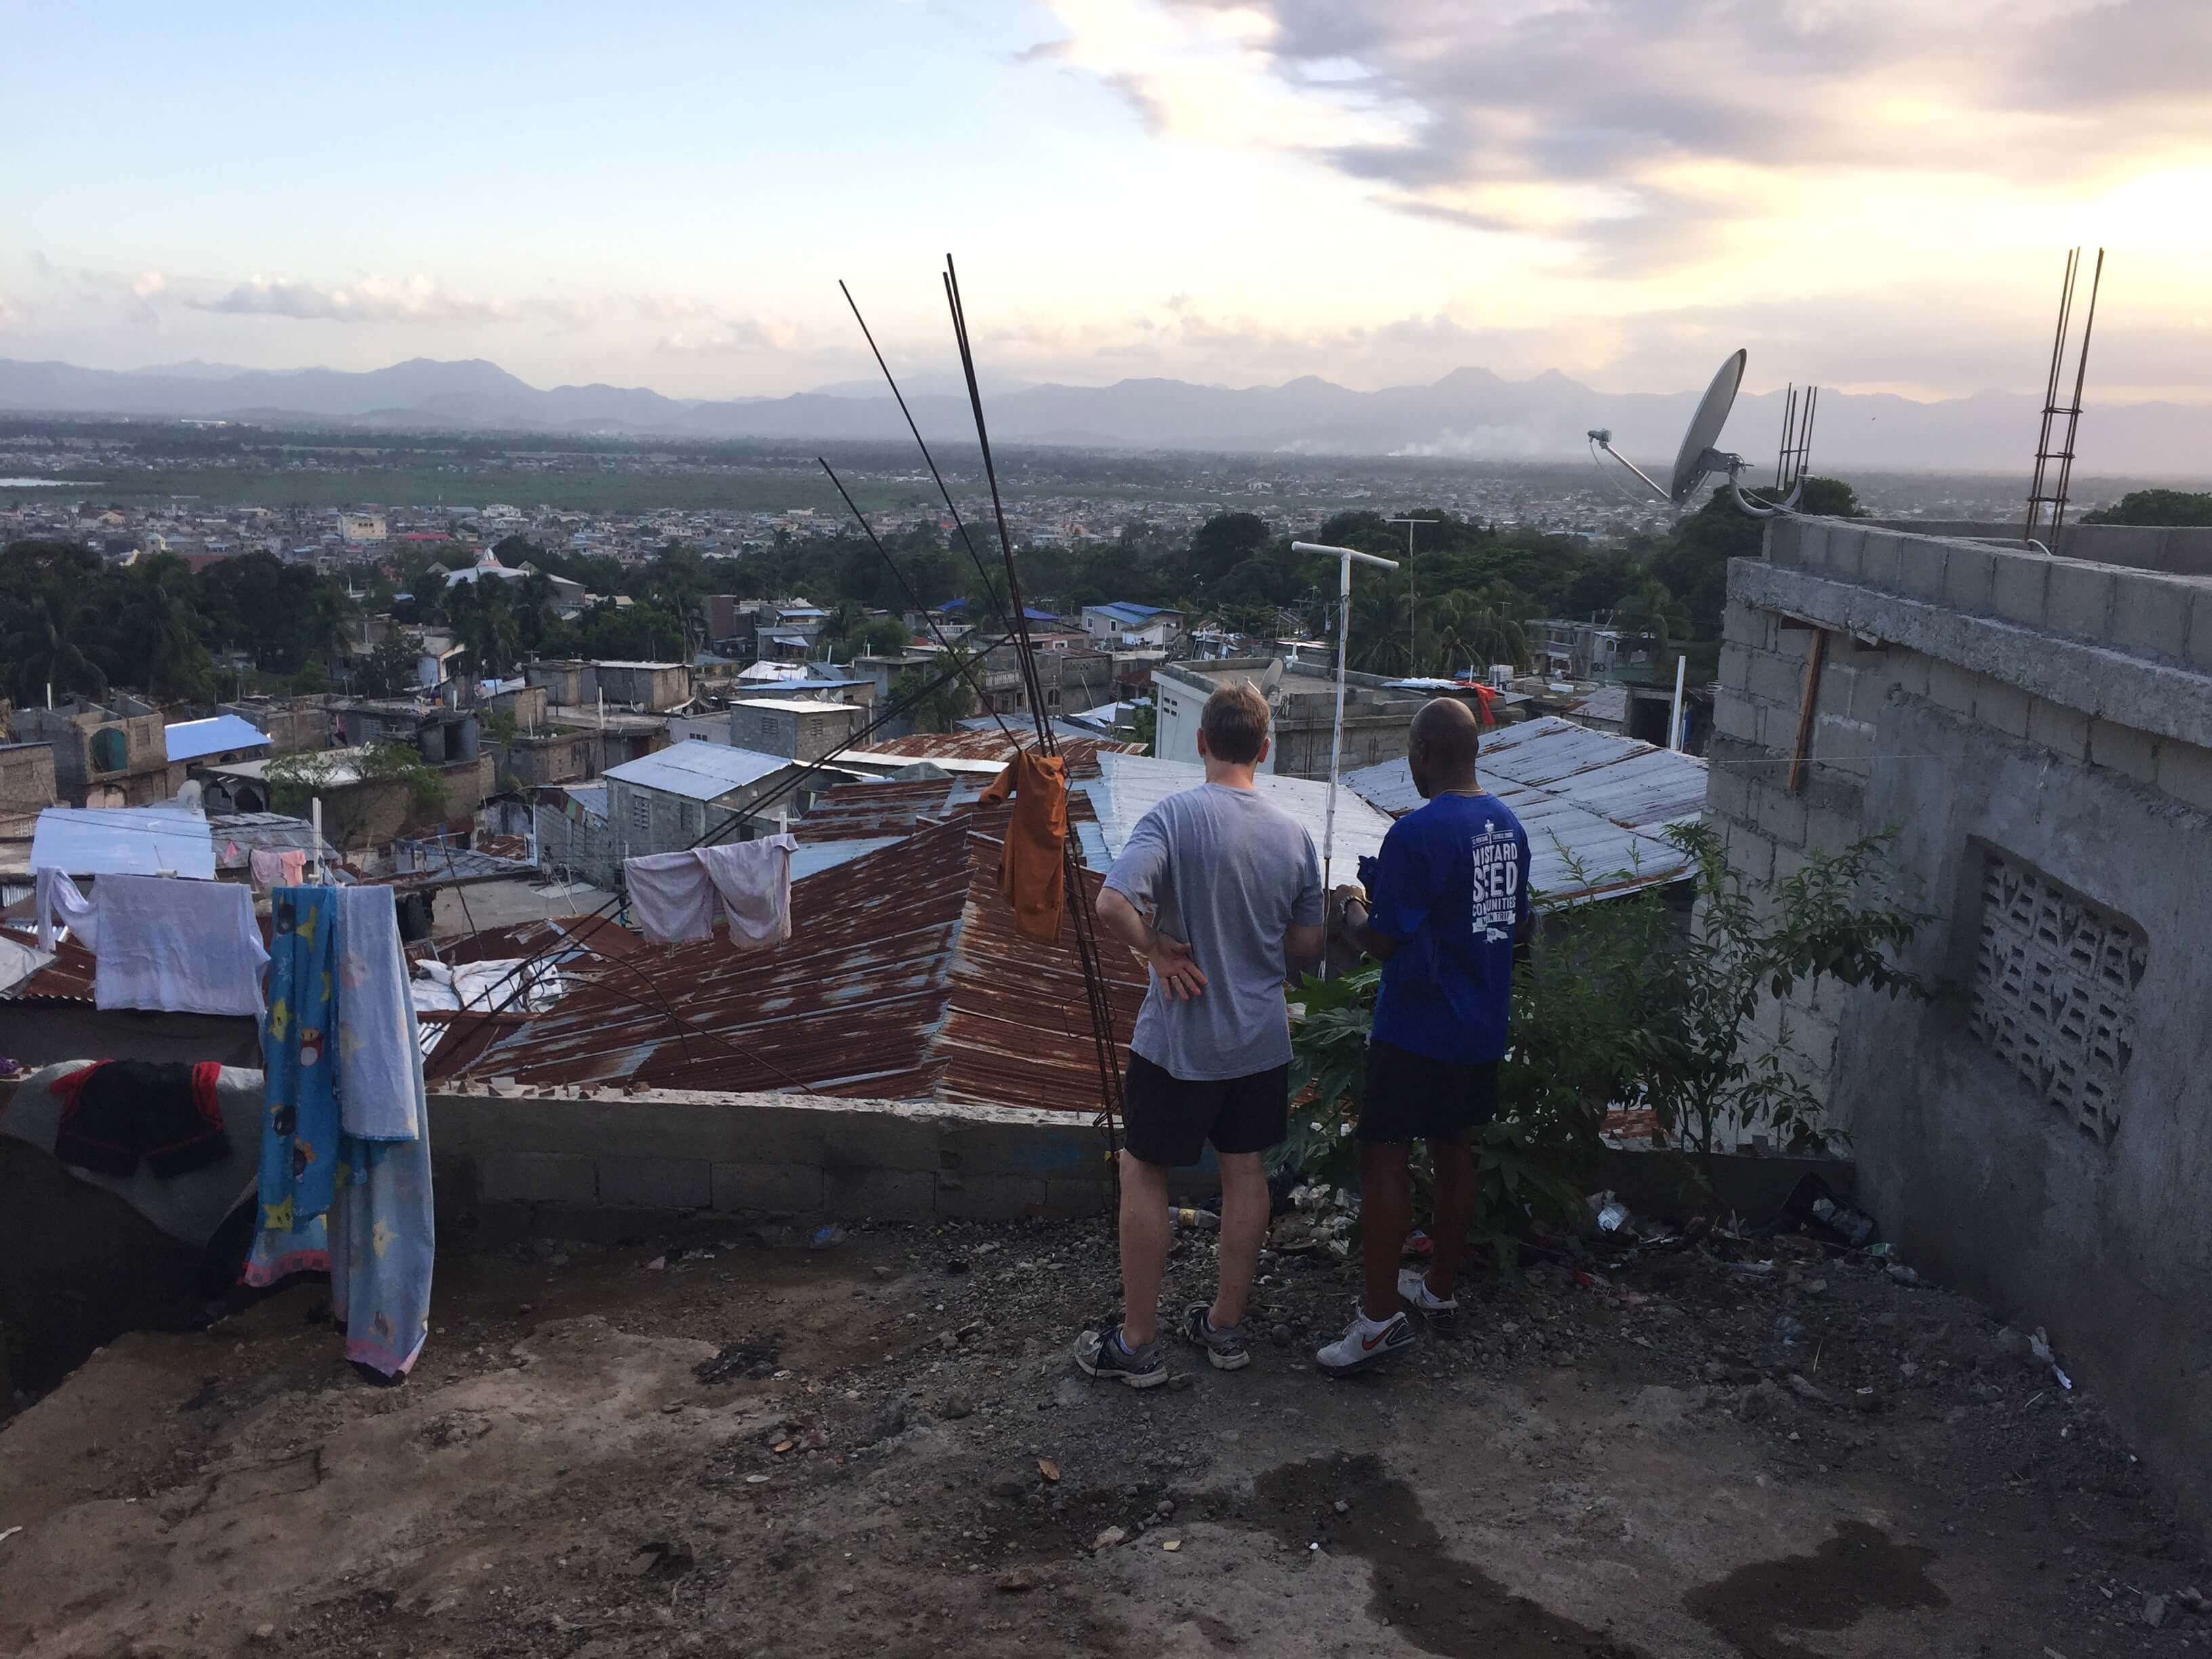 Praying over Cap-Haitien